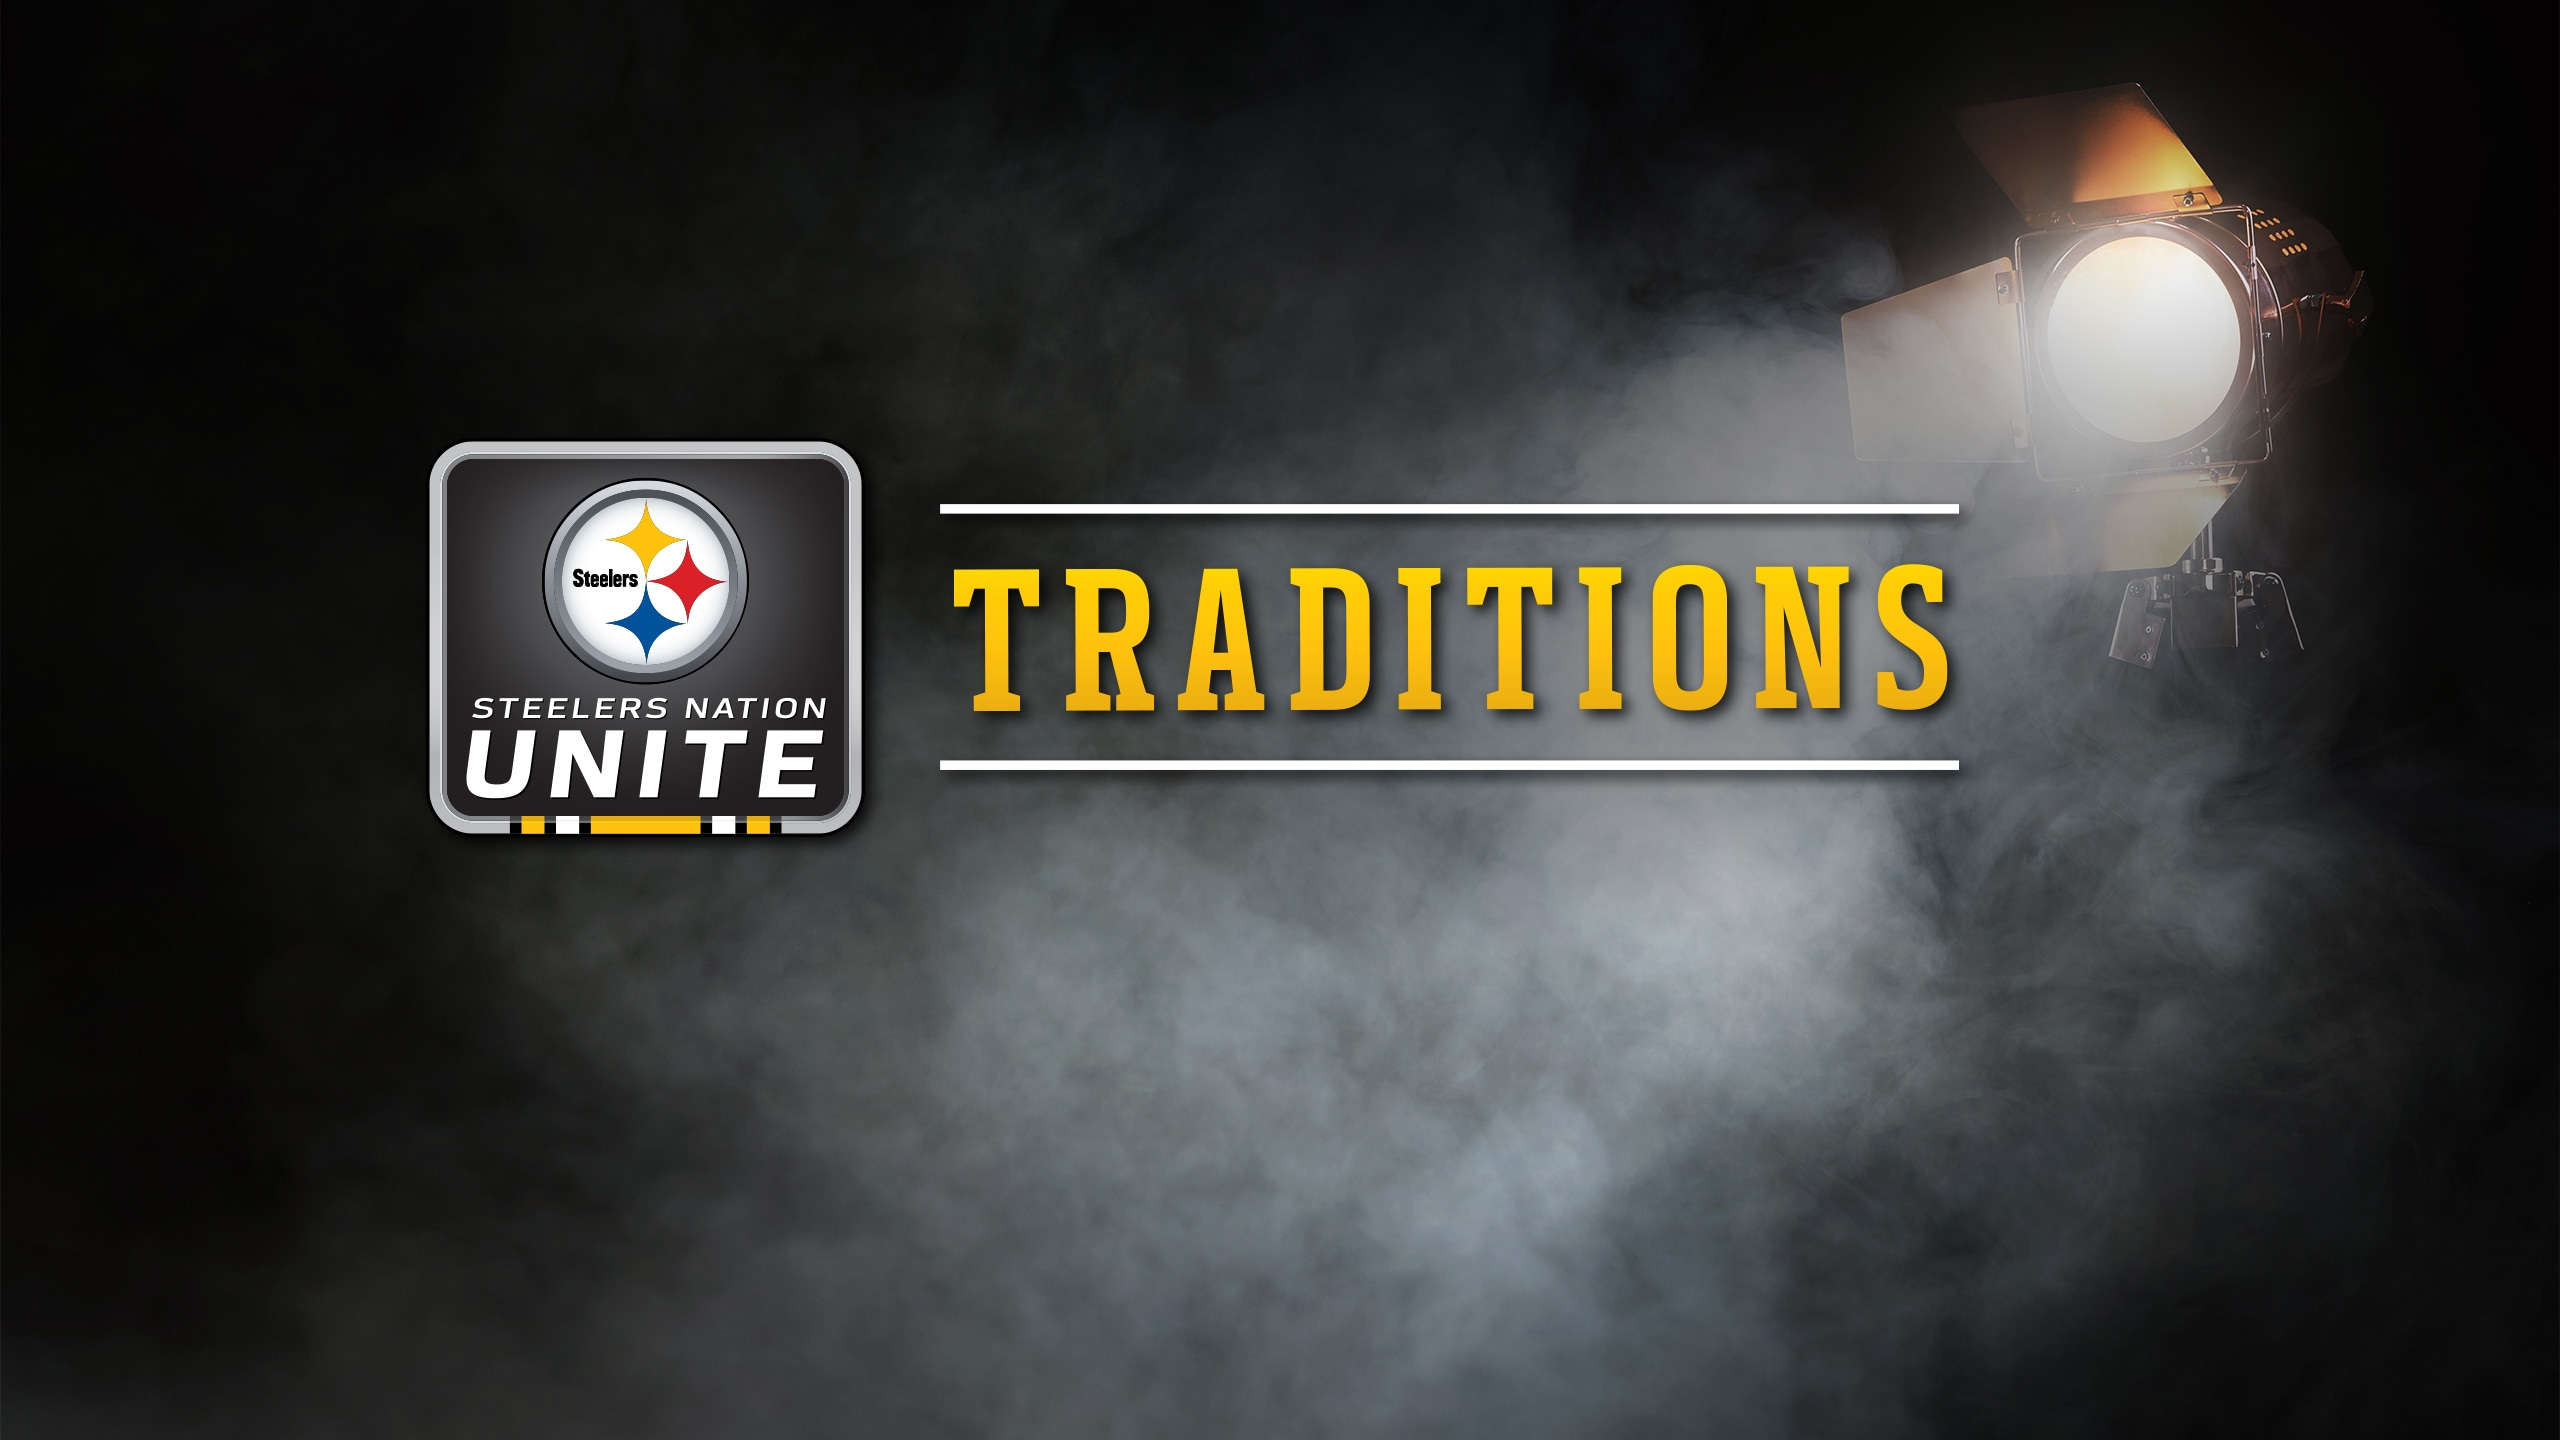 Share your Steelers Traditions